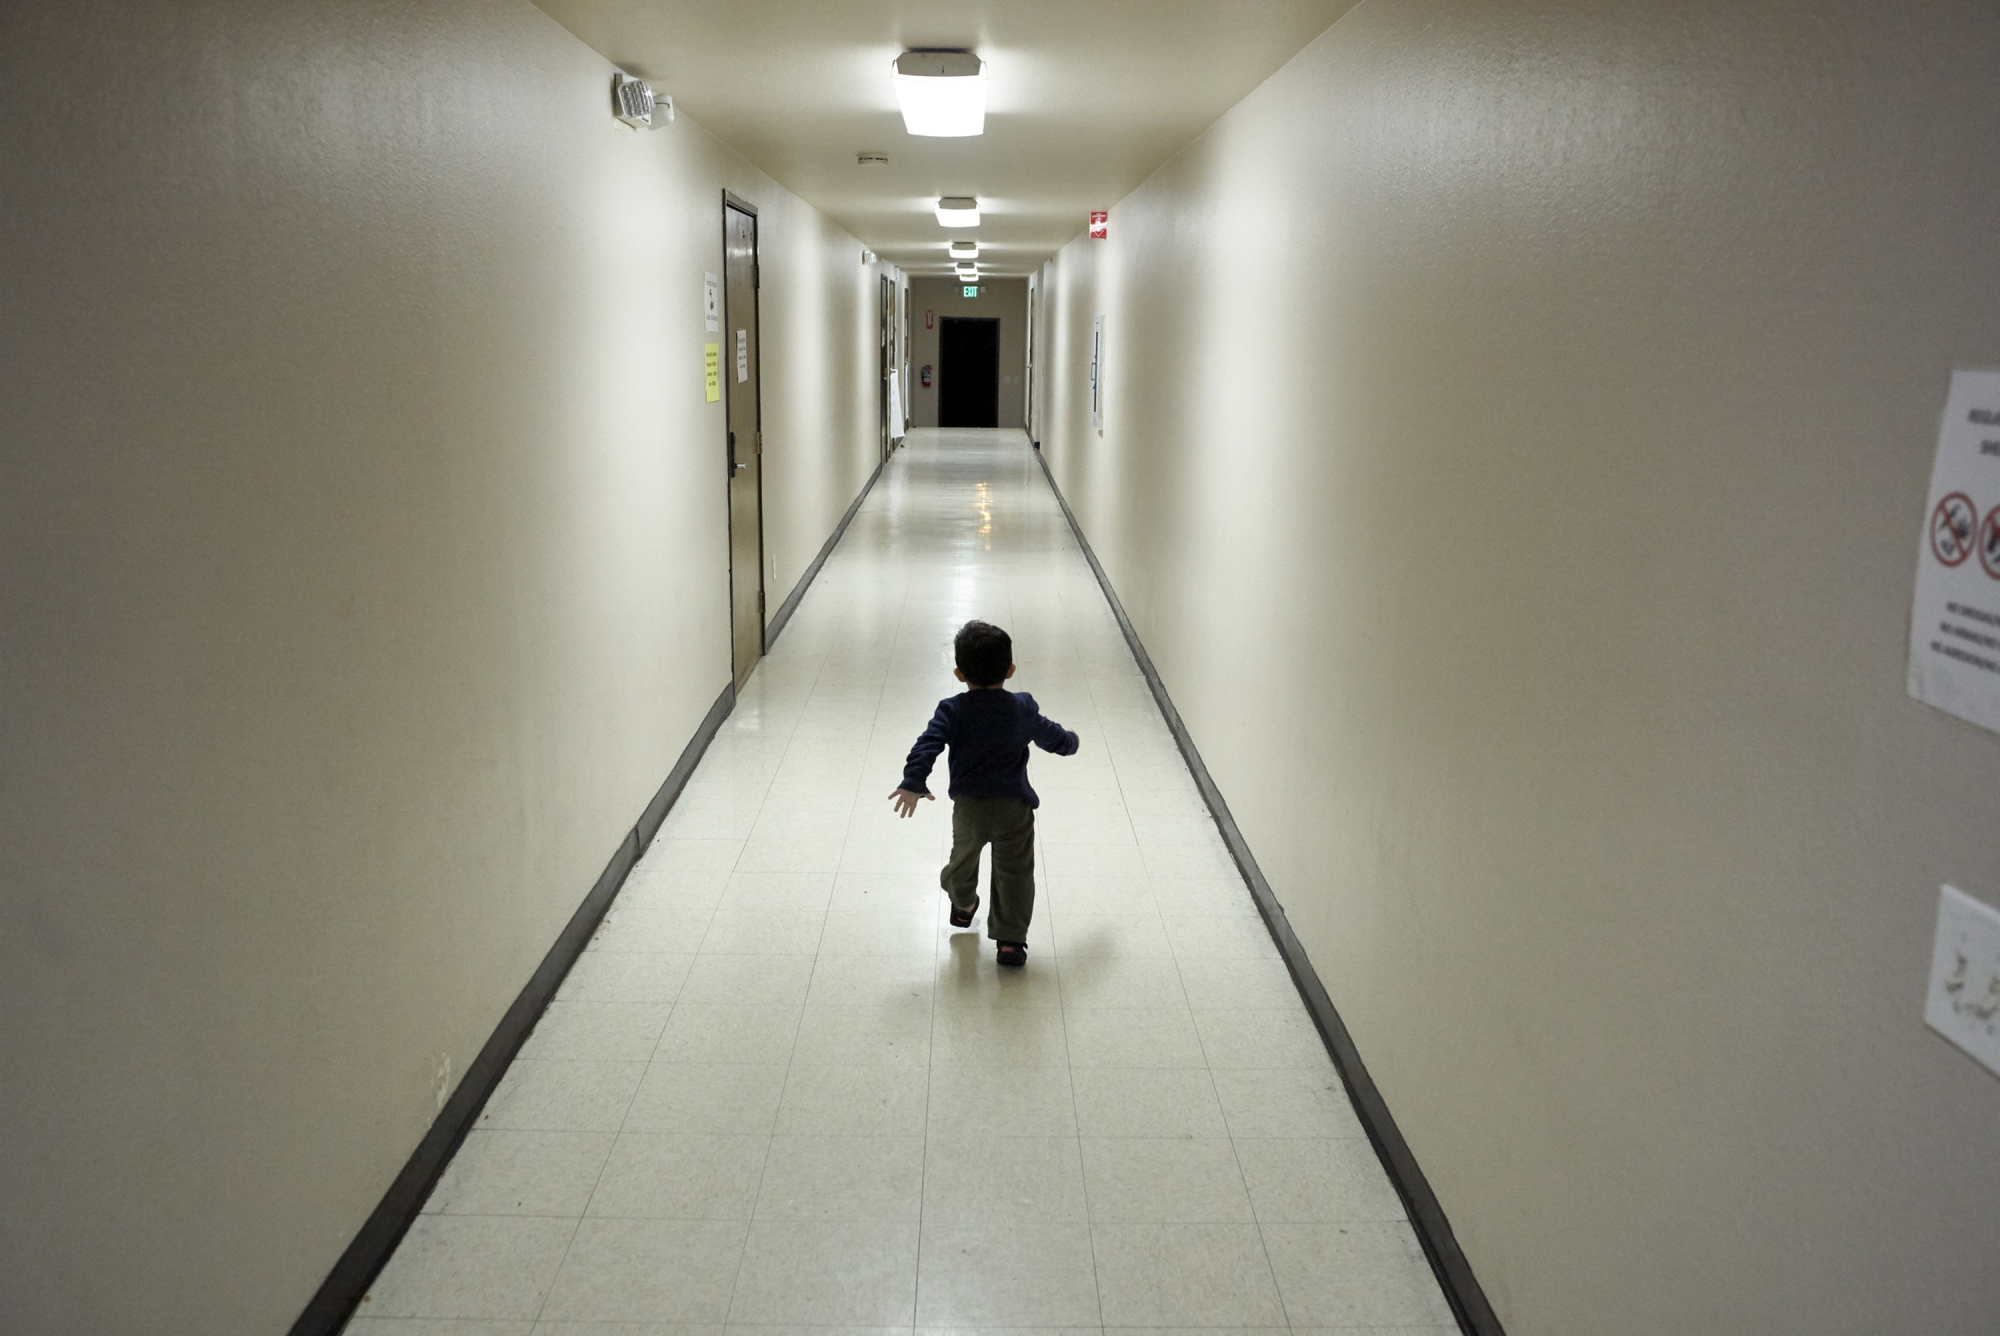 An asylum-seeking boy from Central America runs down a hallway after arriving from an immigration detention center to a shelter in San Diego, California, Dec. 11. The Trump administration expects to launch a policy as early as Friday that forces people seeking asylum to wait in Mexico while their cases wind through U.S. courts, an official said, marking one of the most significant changes to the immigration system of Donald Trump's presidency. | AP